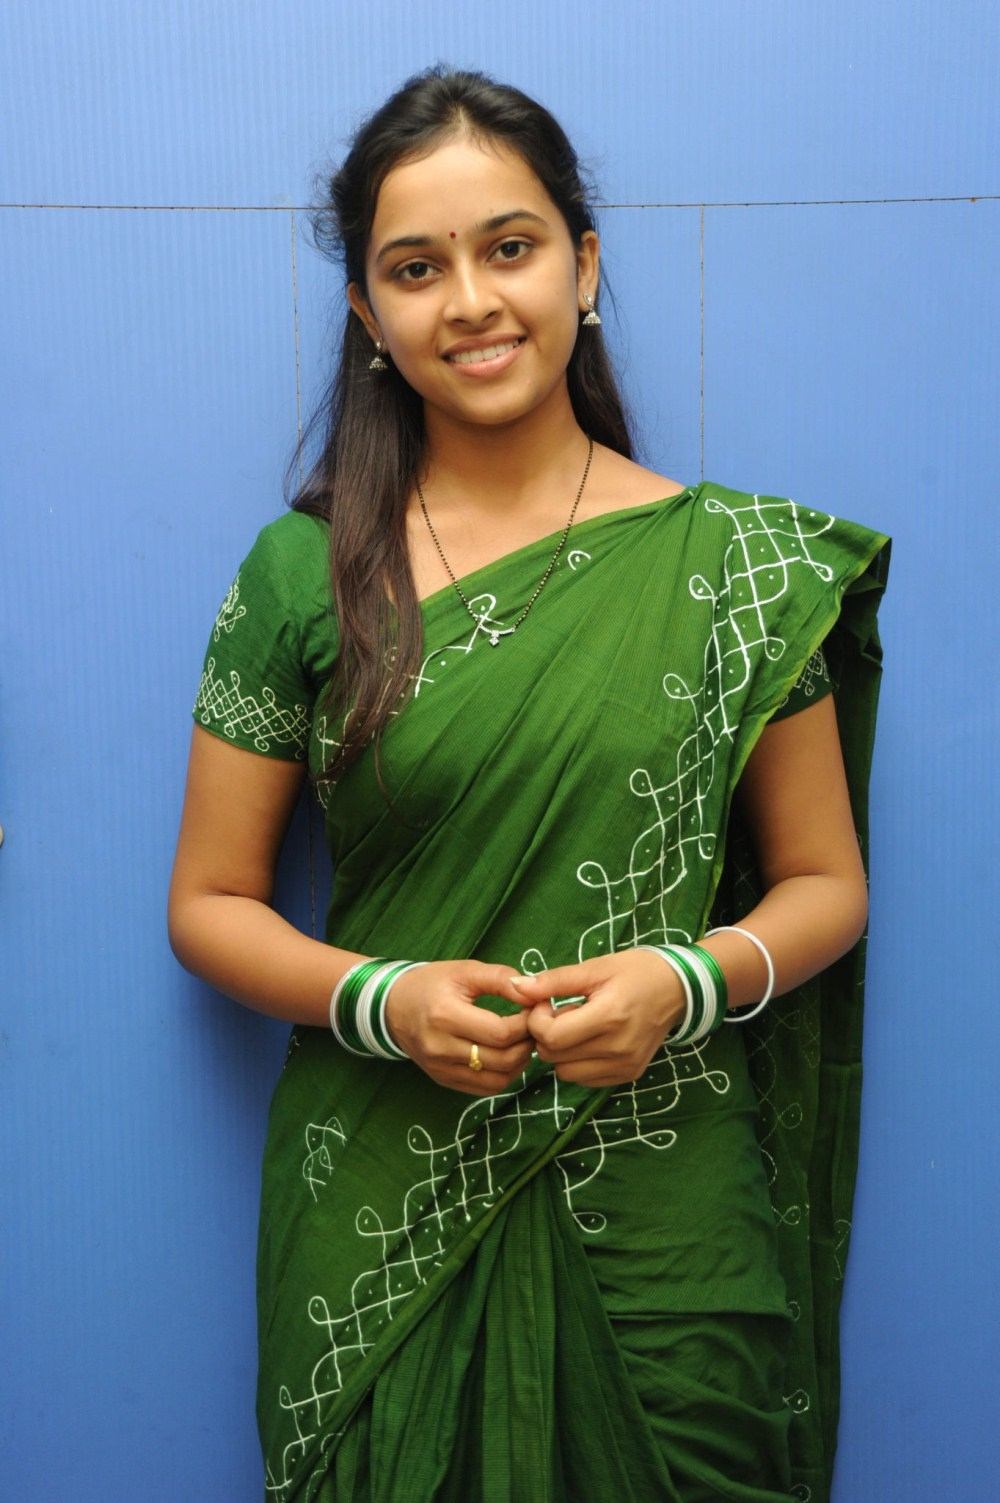 Actress Sri Divya Photos: Actress Sri Divya Saree Stills